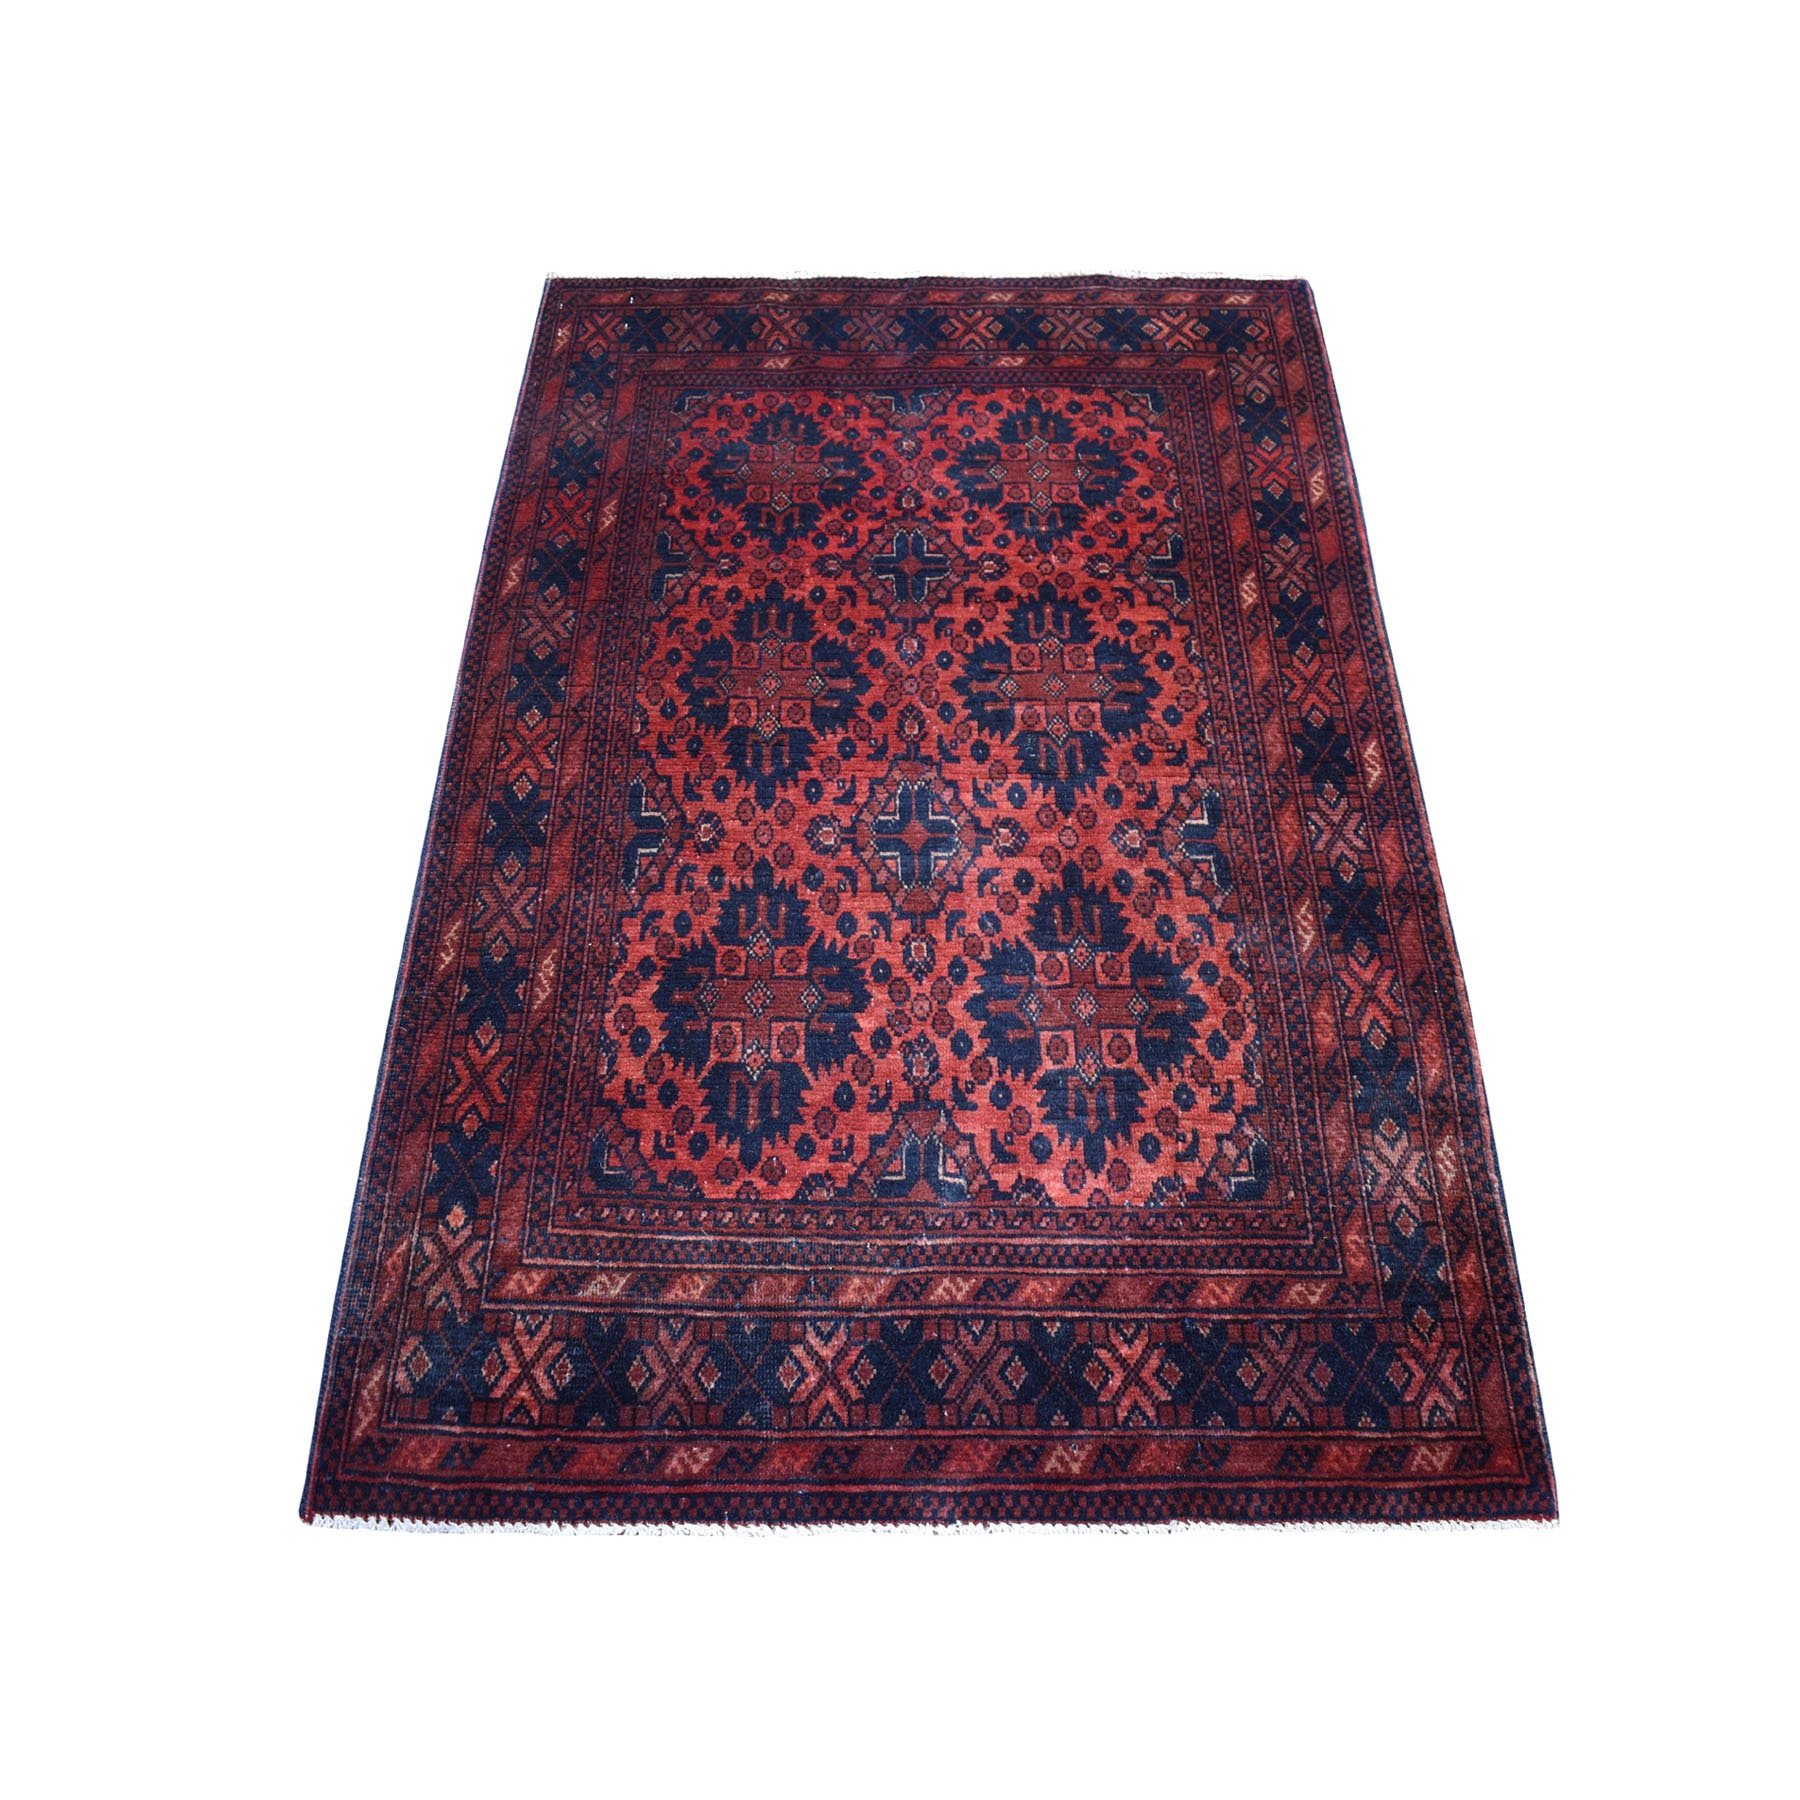 "3'5""x5' Deep and Saturated Red Tribal Afghan Andkhoy Pure Wool Hand Woven Oriental Rug"